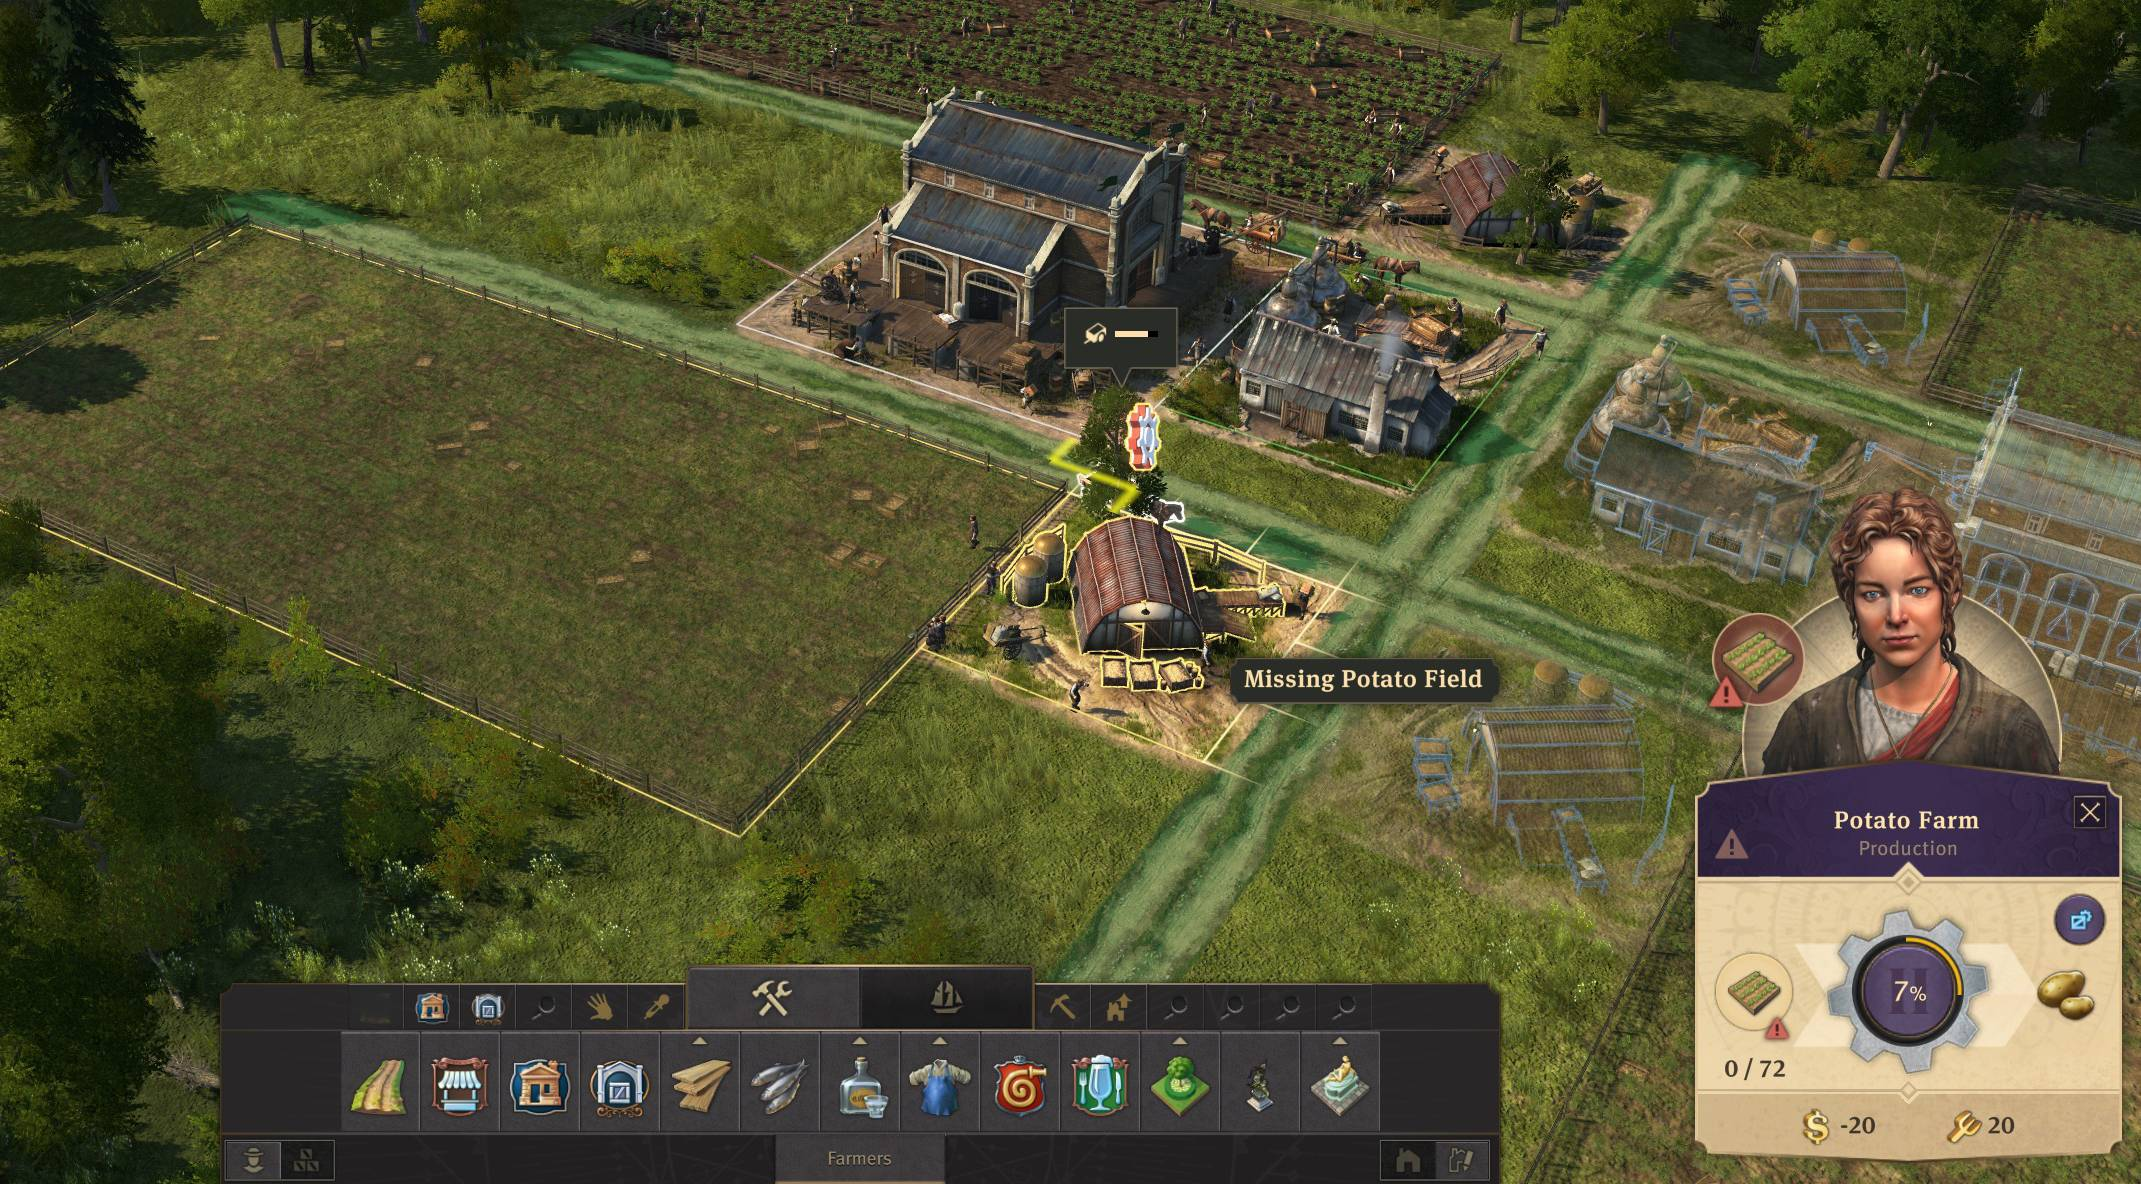 ANNO 1800] Farm shows missing fields although there's plenty